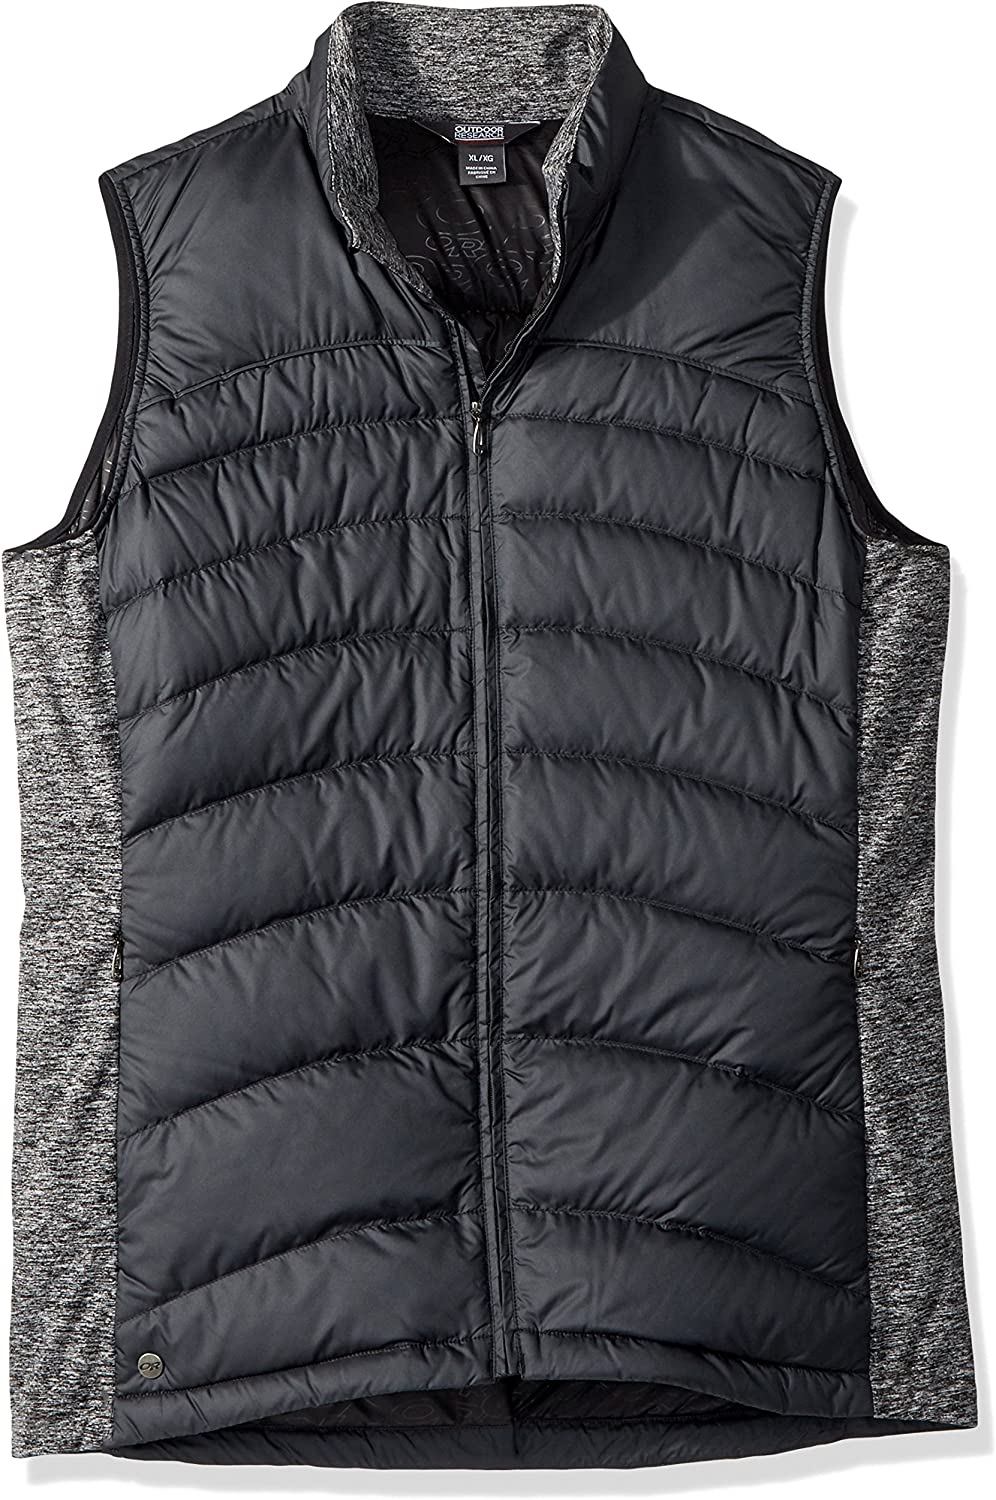 Outdoor Research Women's Plaza Vest